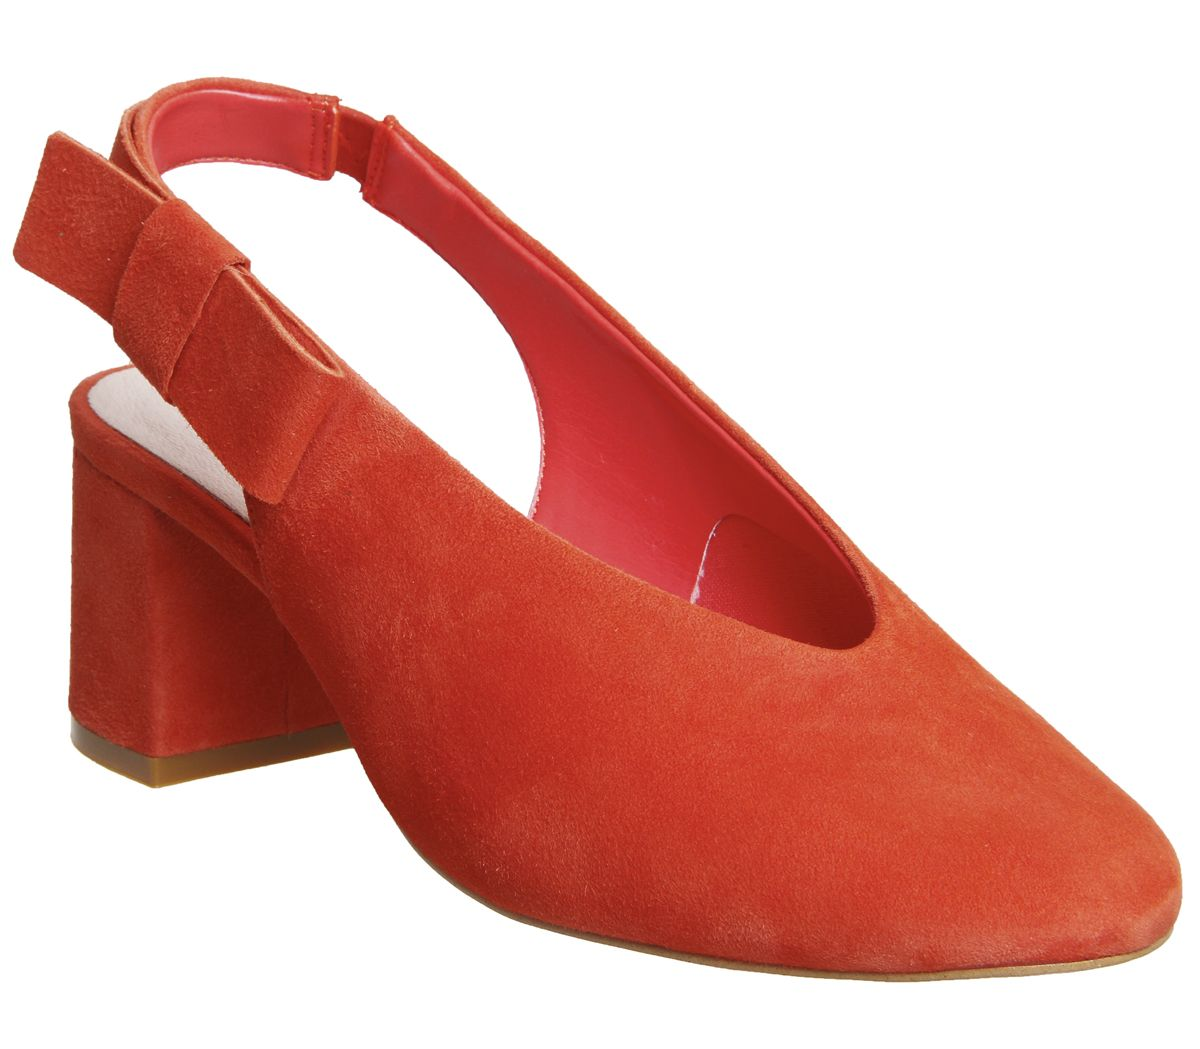 Womens-Office-Magical-Bow-Slingback-Heels-Red-Suede-Heels thumbnail 4